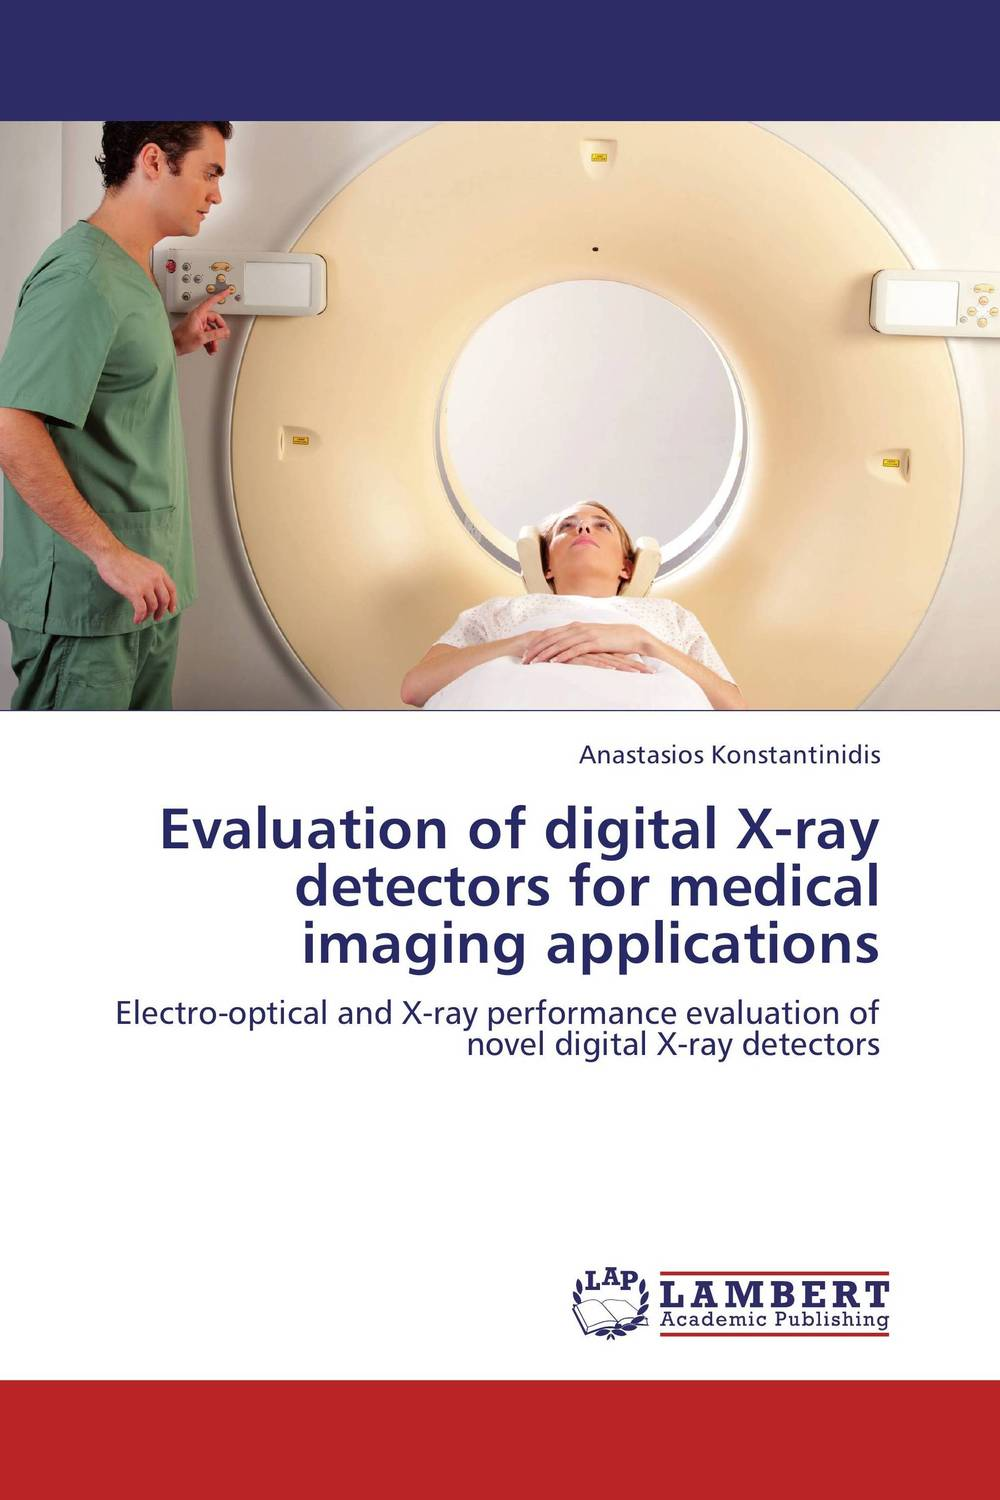 Evaluation of digital X-ray detectors for medical imaging applications